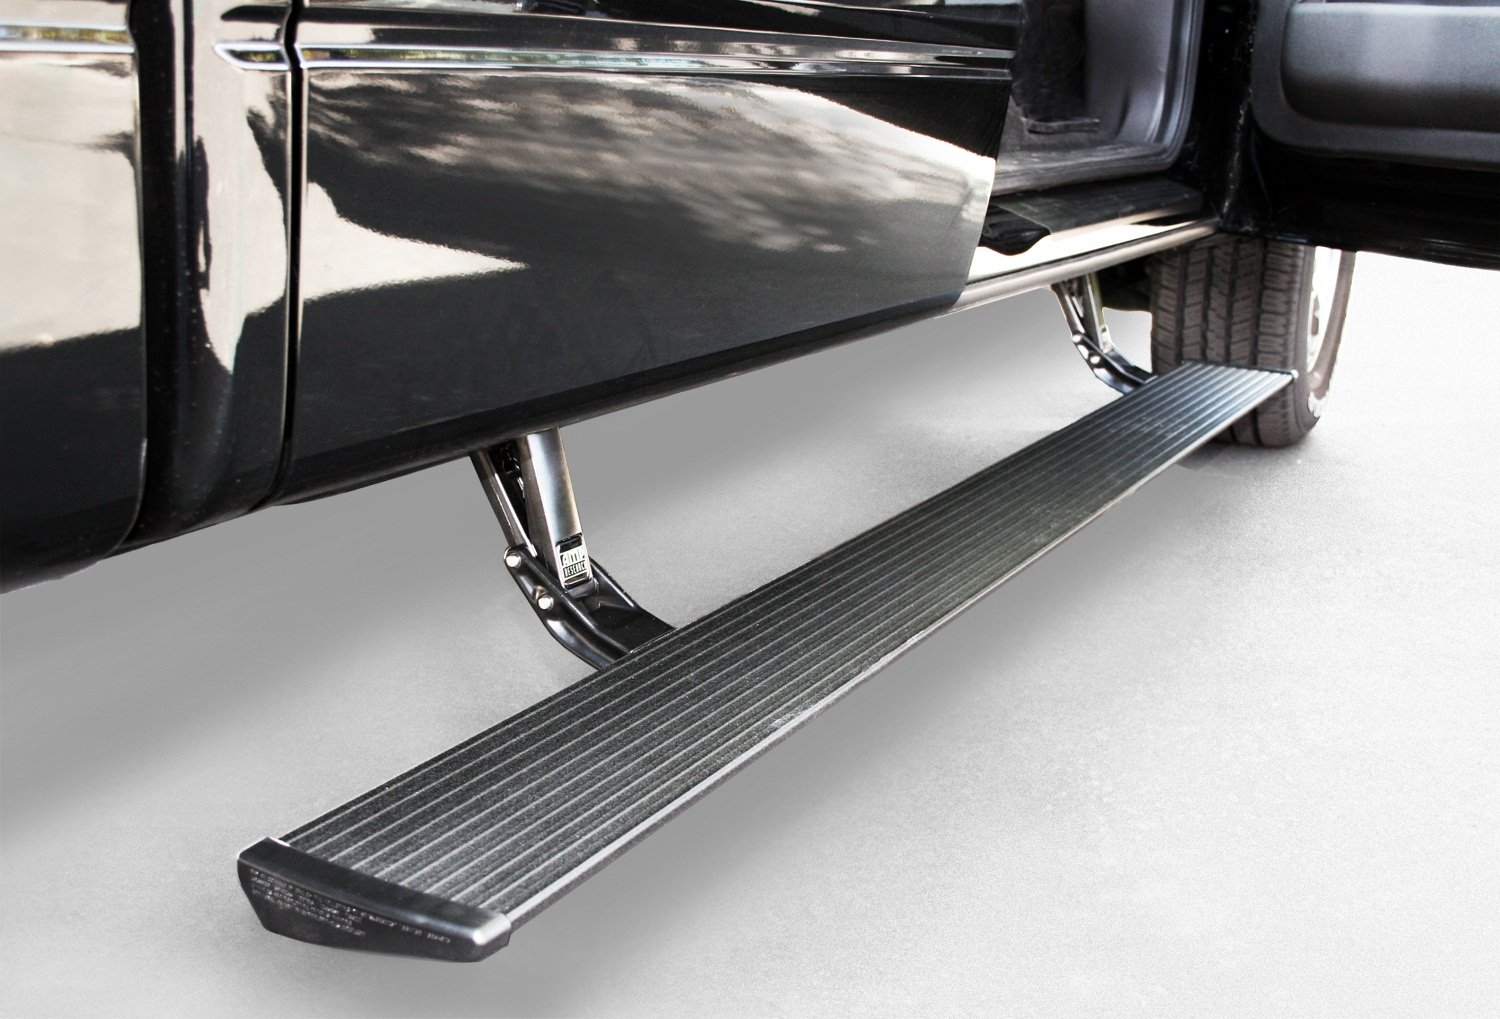 Amp research 75105 01a power step running board for ford f 150 2004 2008 and lincoln mark lt 2006 2008 step rails amazon canada